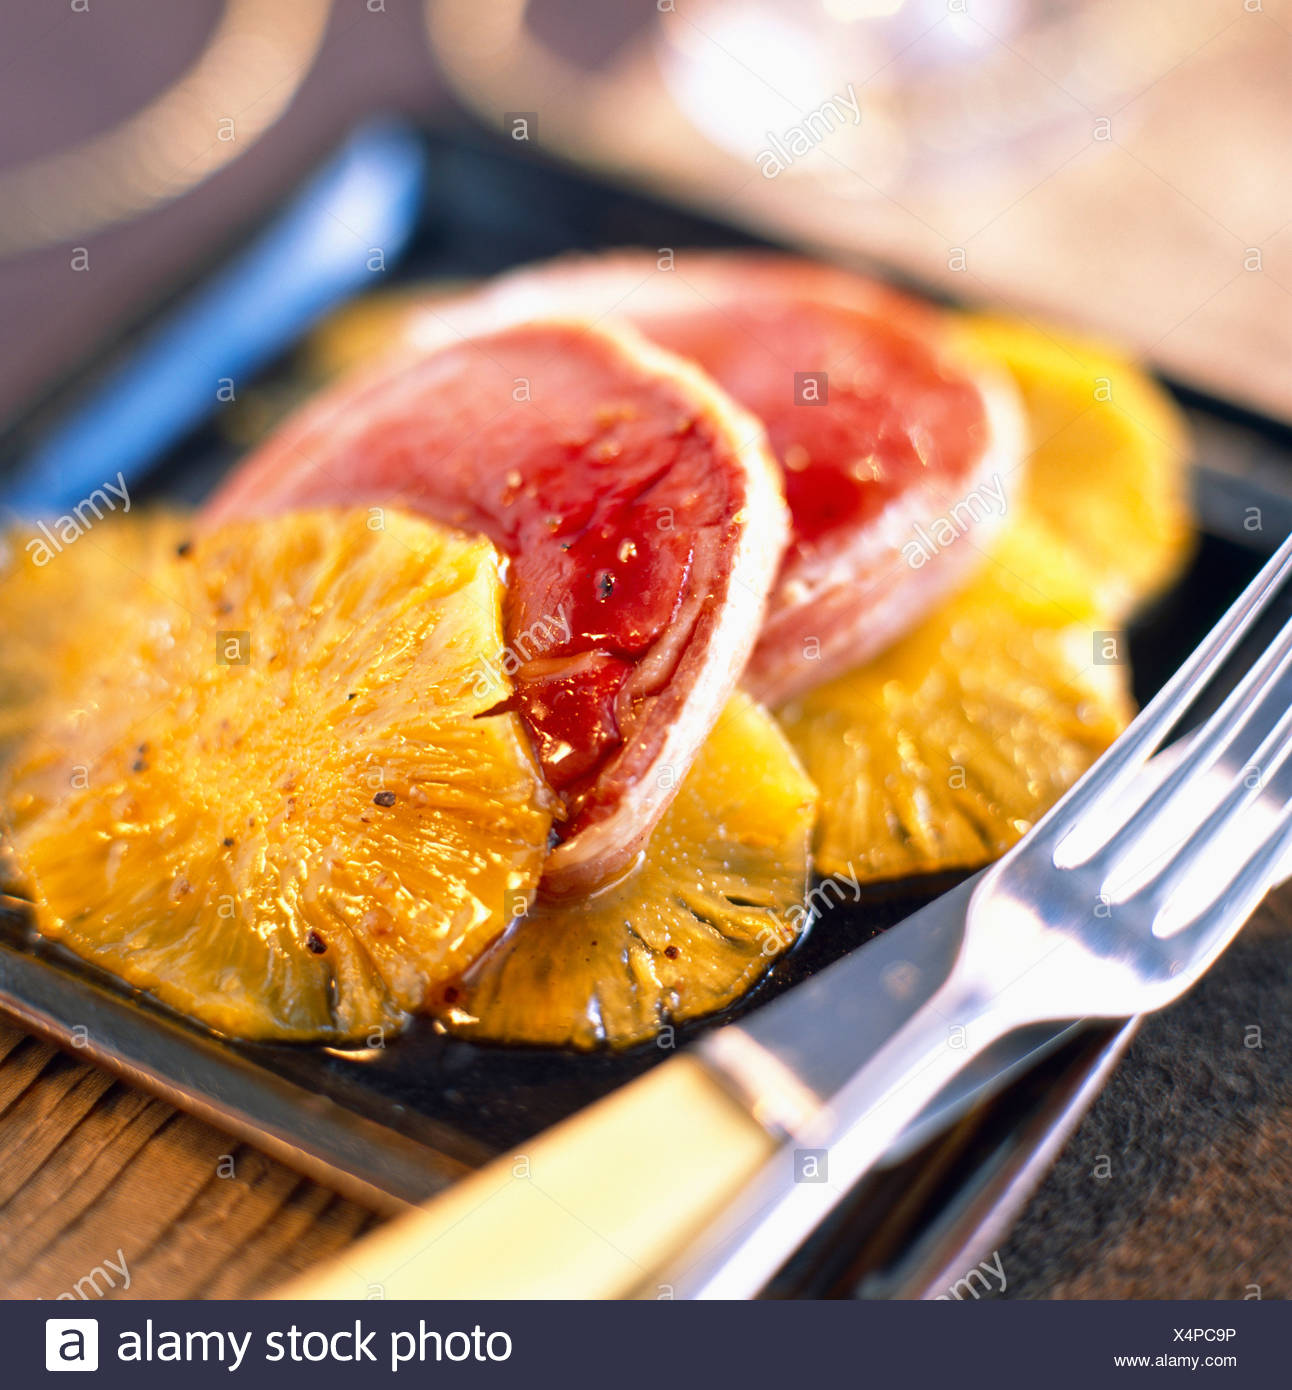 Slices of roast ostrich with pineapple - Stock Image